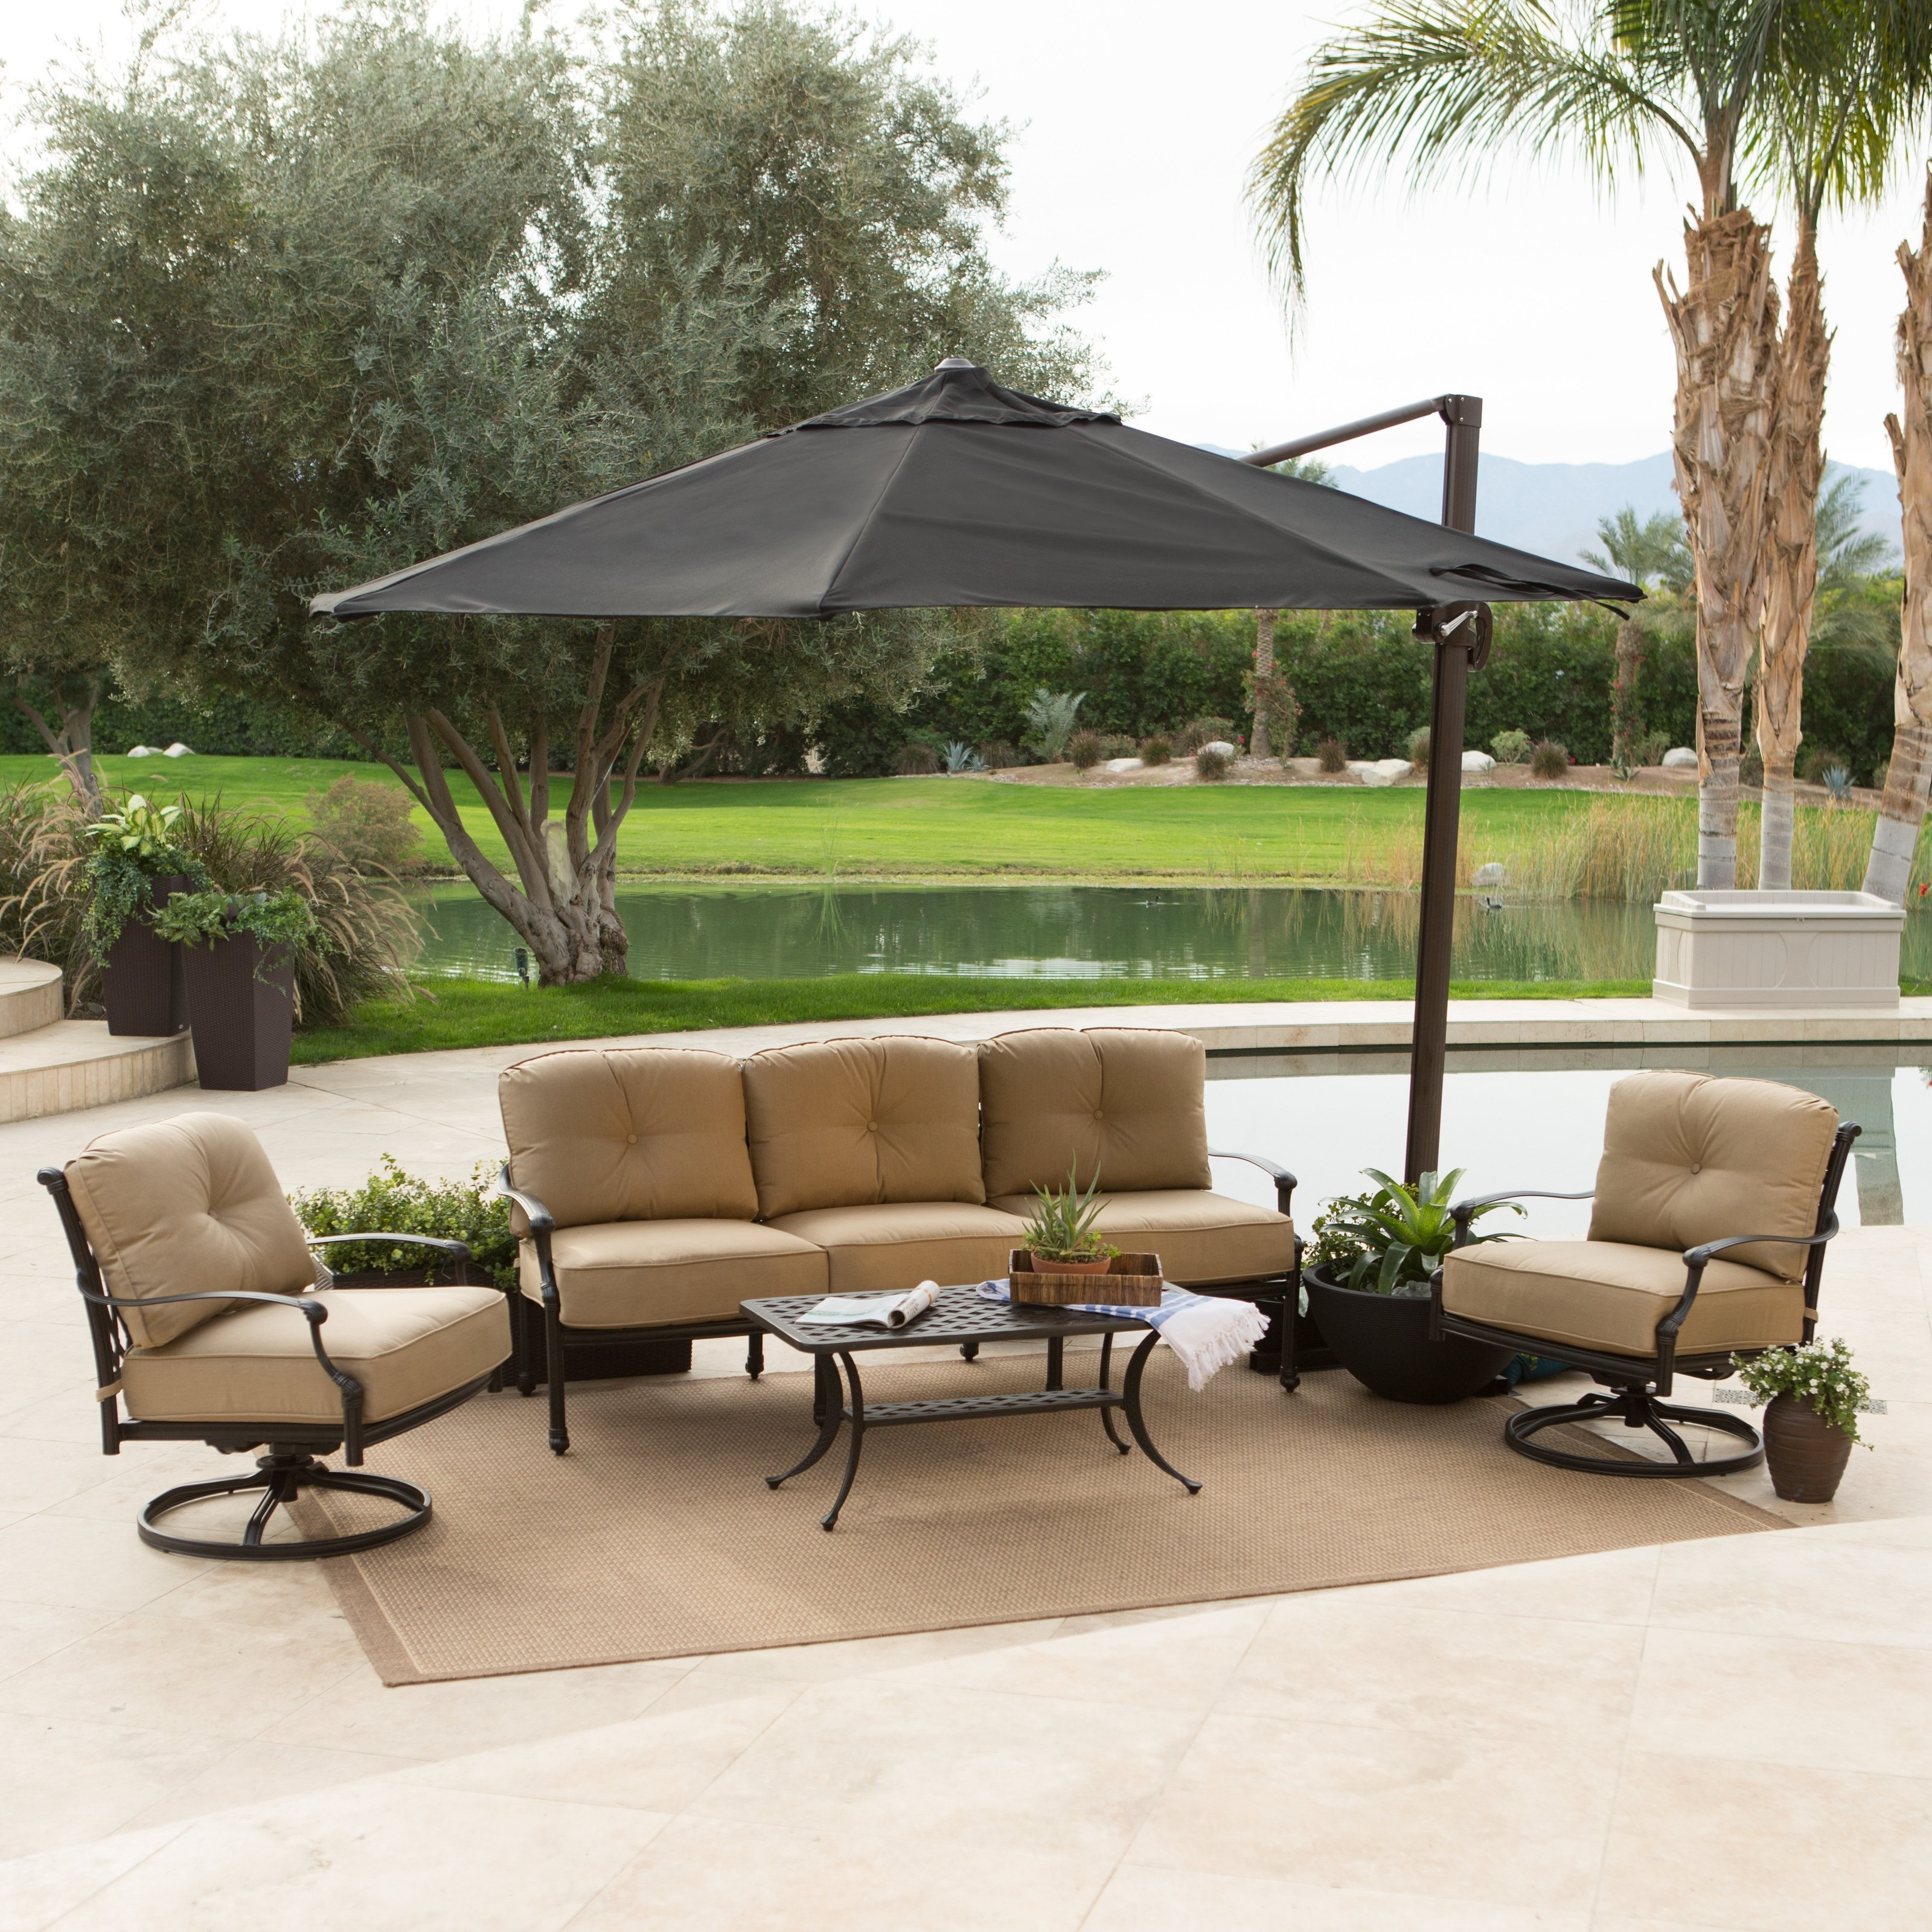 Most Recent Patio Deck Umbrellas In Cheerful Outdoor Patio Design With Chairs And Table Sets Protected (View 16 of 20)